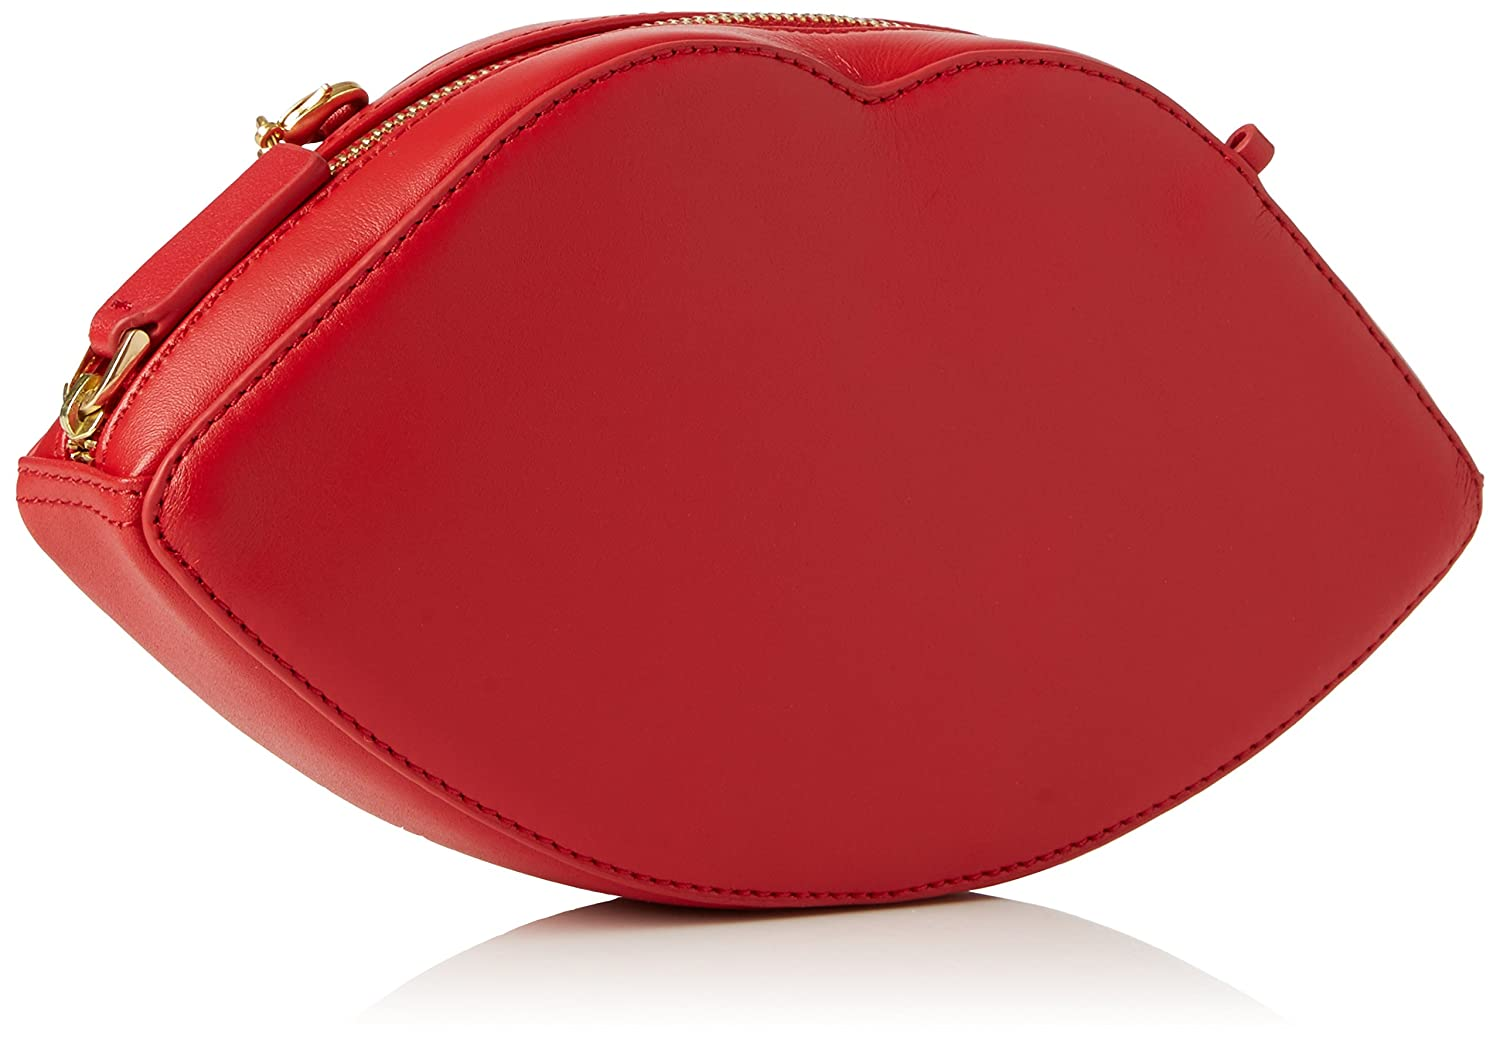 d8e4e34d1 Buy Lulu Guinness Women's Lips Crossbody Cross-Body Bag Red - Red Online at  Low Prices in India - Amazon.in